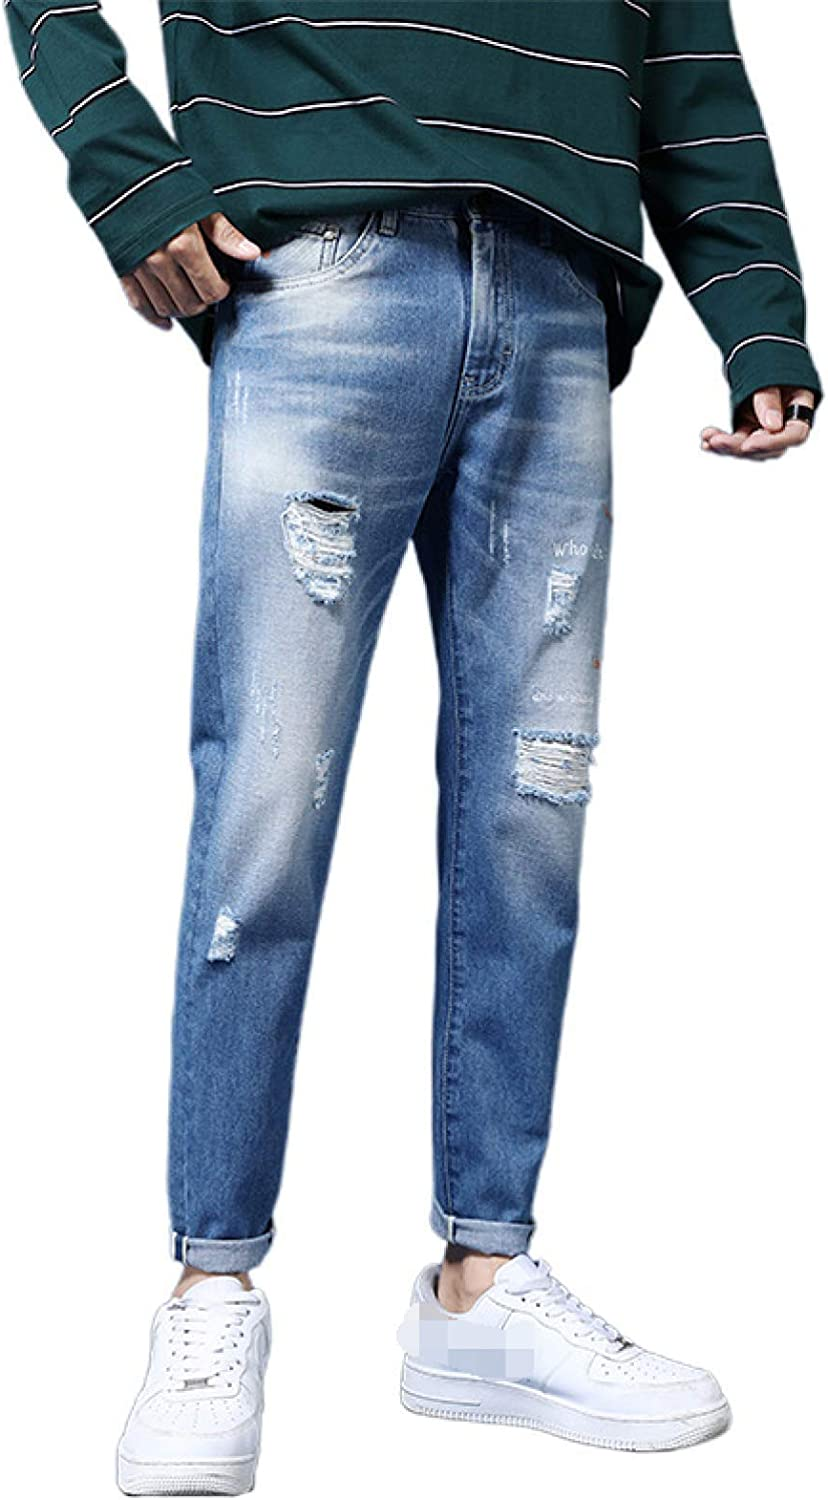 Corumly Men's Slim Recommended Fit Jeans Street Style Sale Special Price Frayed Breathable